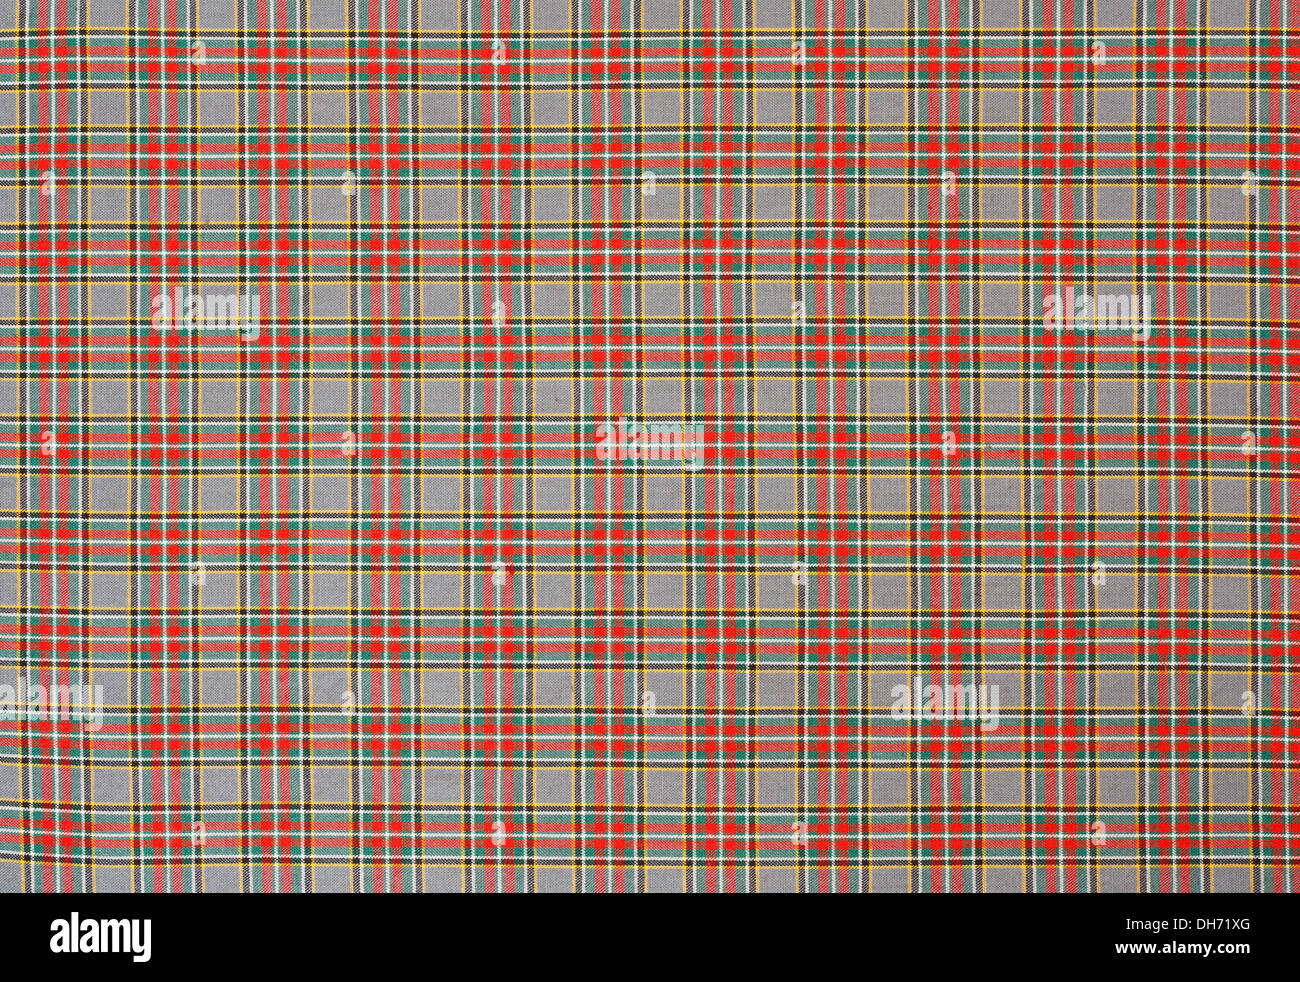 Scottish tartan background a checked plaid weave pattern with red, green and yellow colours. - Stock Image